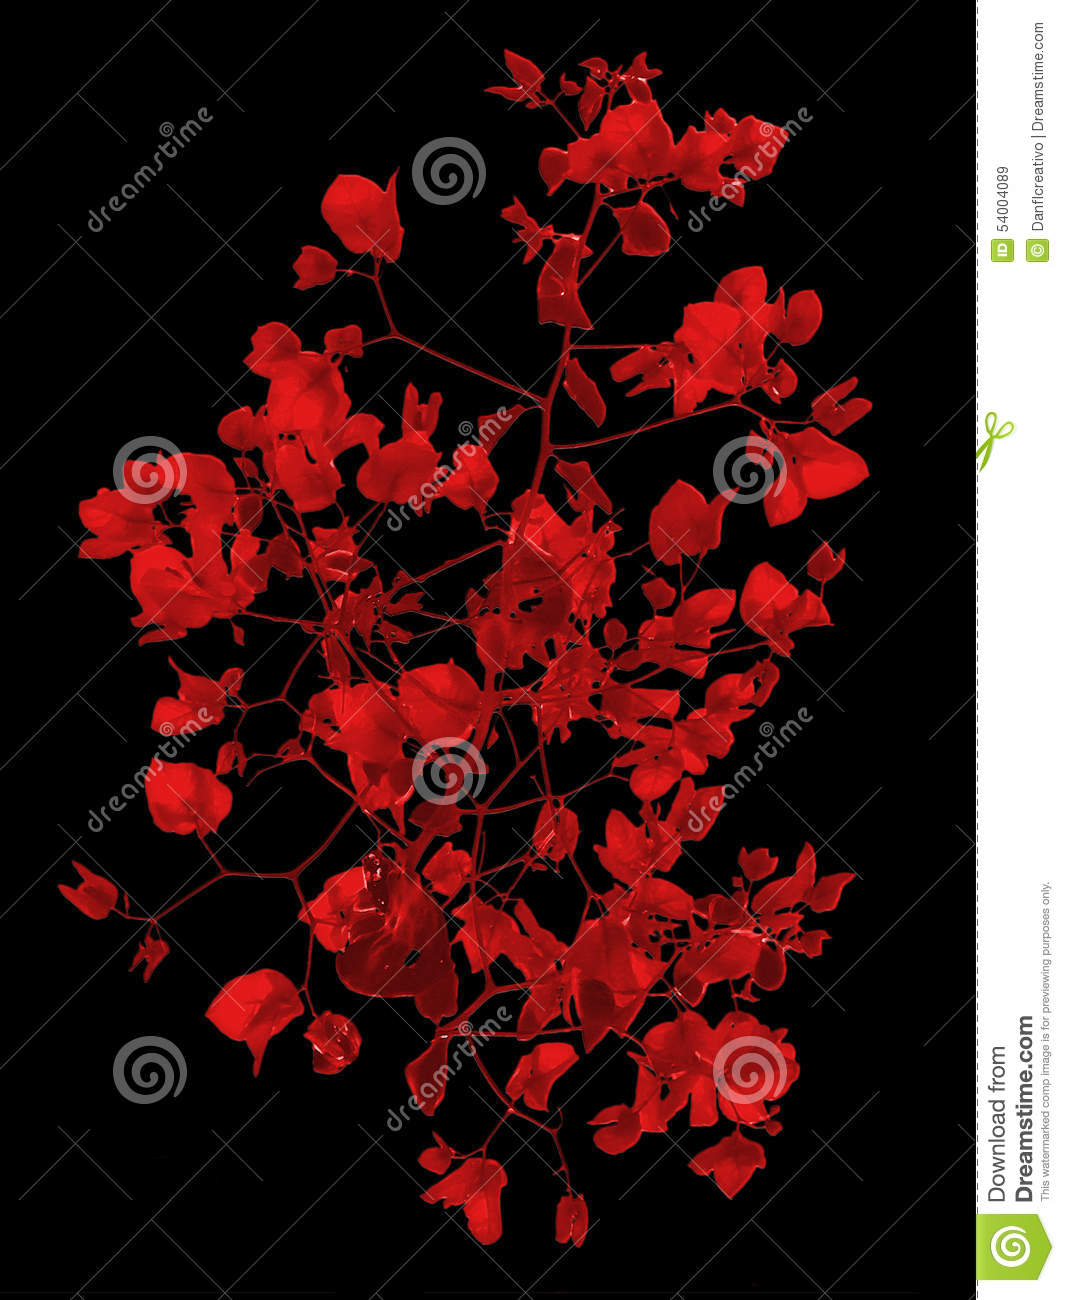 red floral background stock image image of flowers